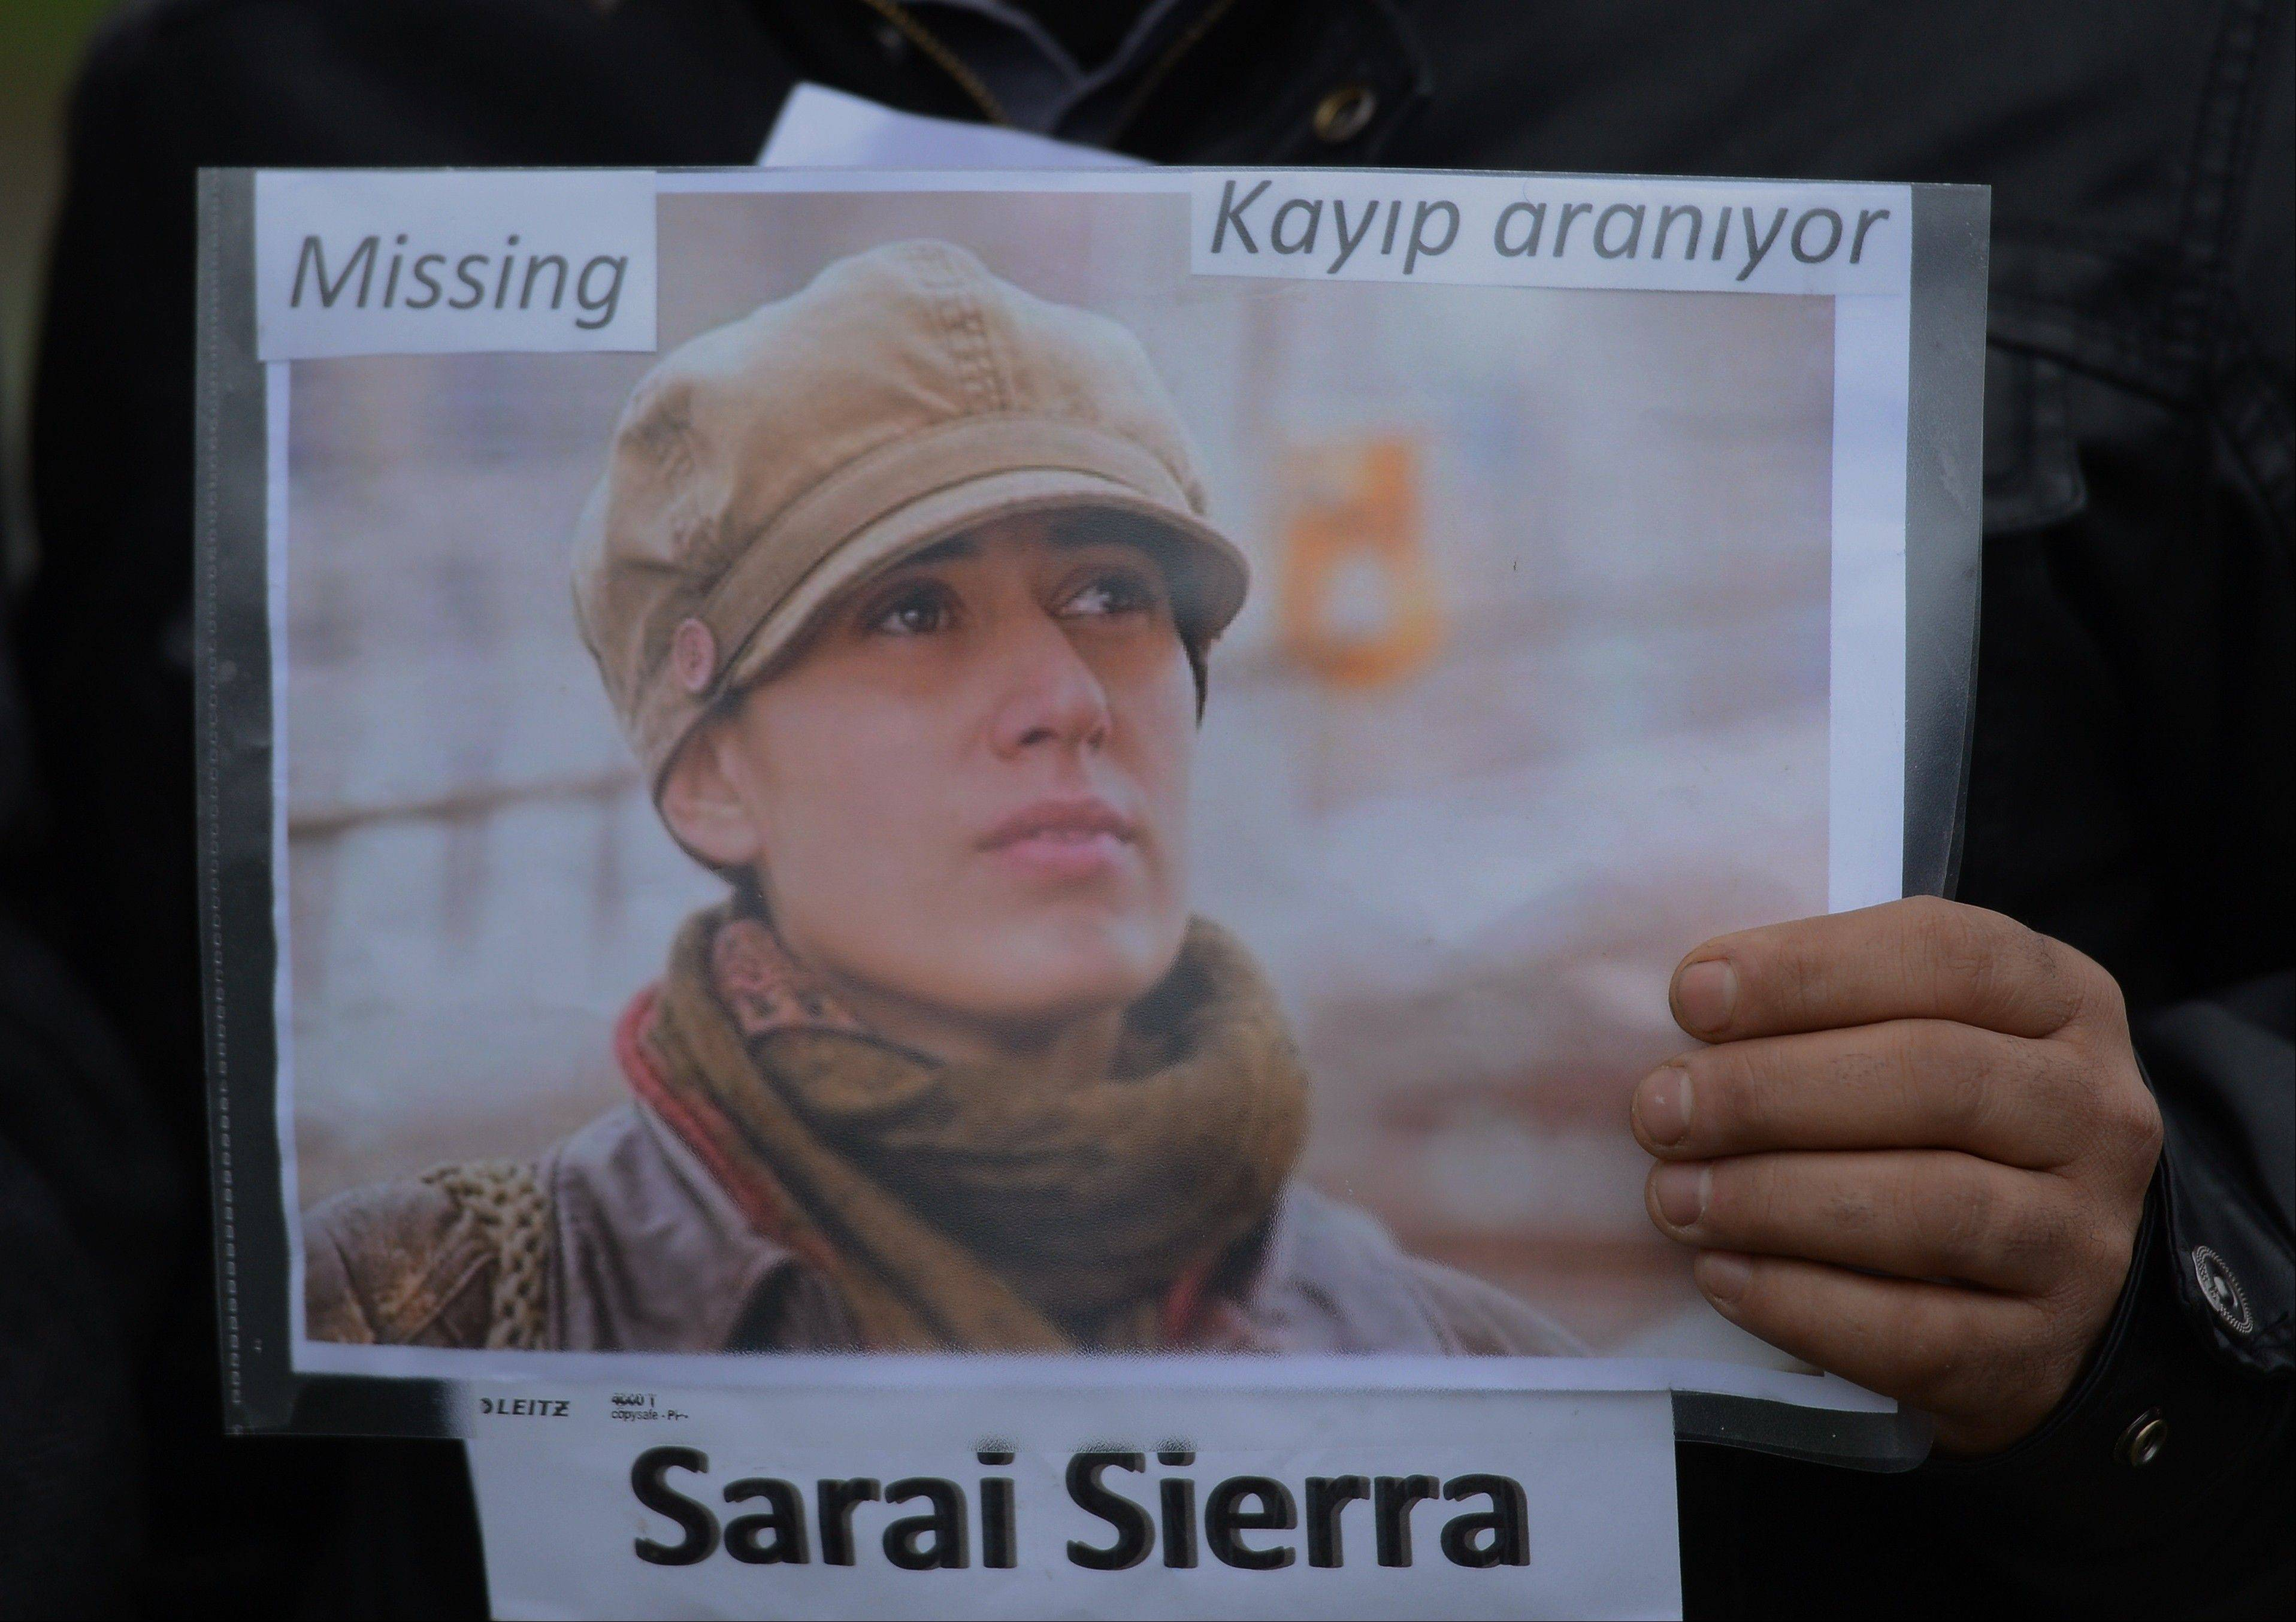 Sarai Sierra, a 33-year-old mother of two from New York City, went missing Jan. 21 while on a solo vacation in Istanbul. Her body was found 12 days later, near the remnants of some ancient city walls.